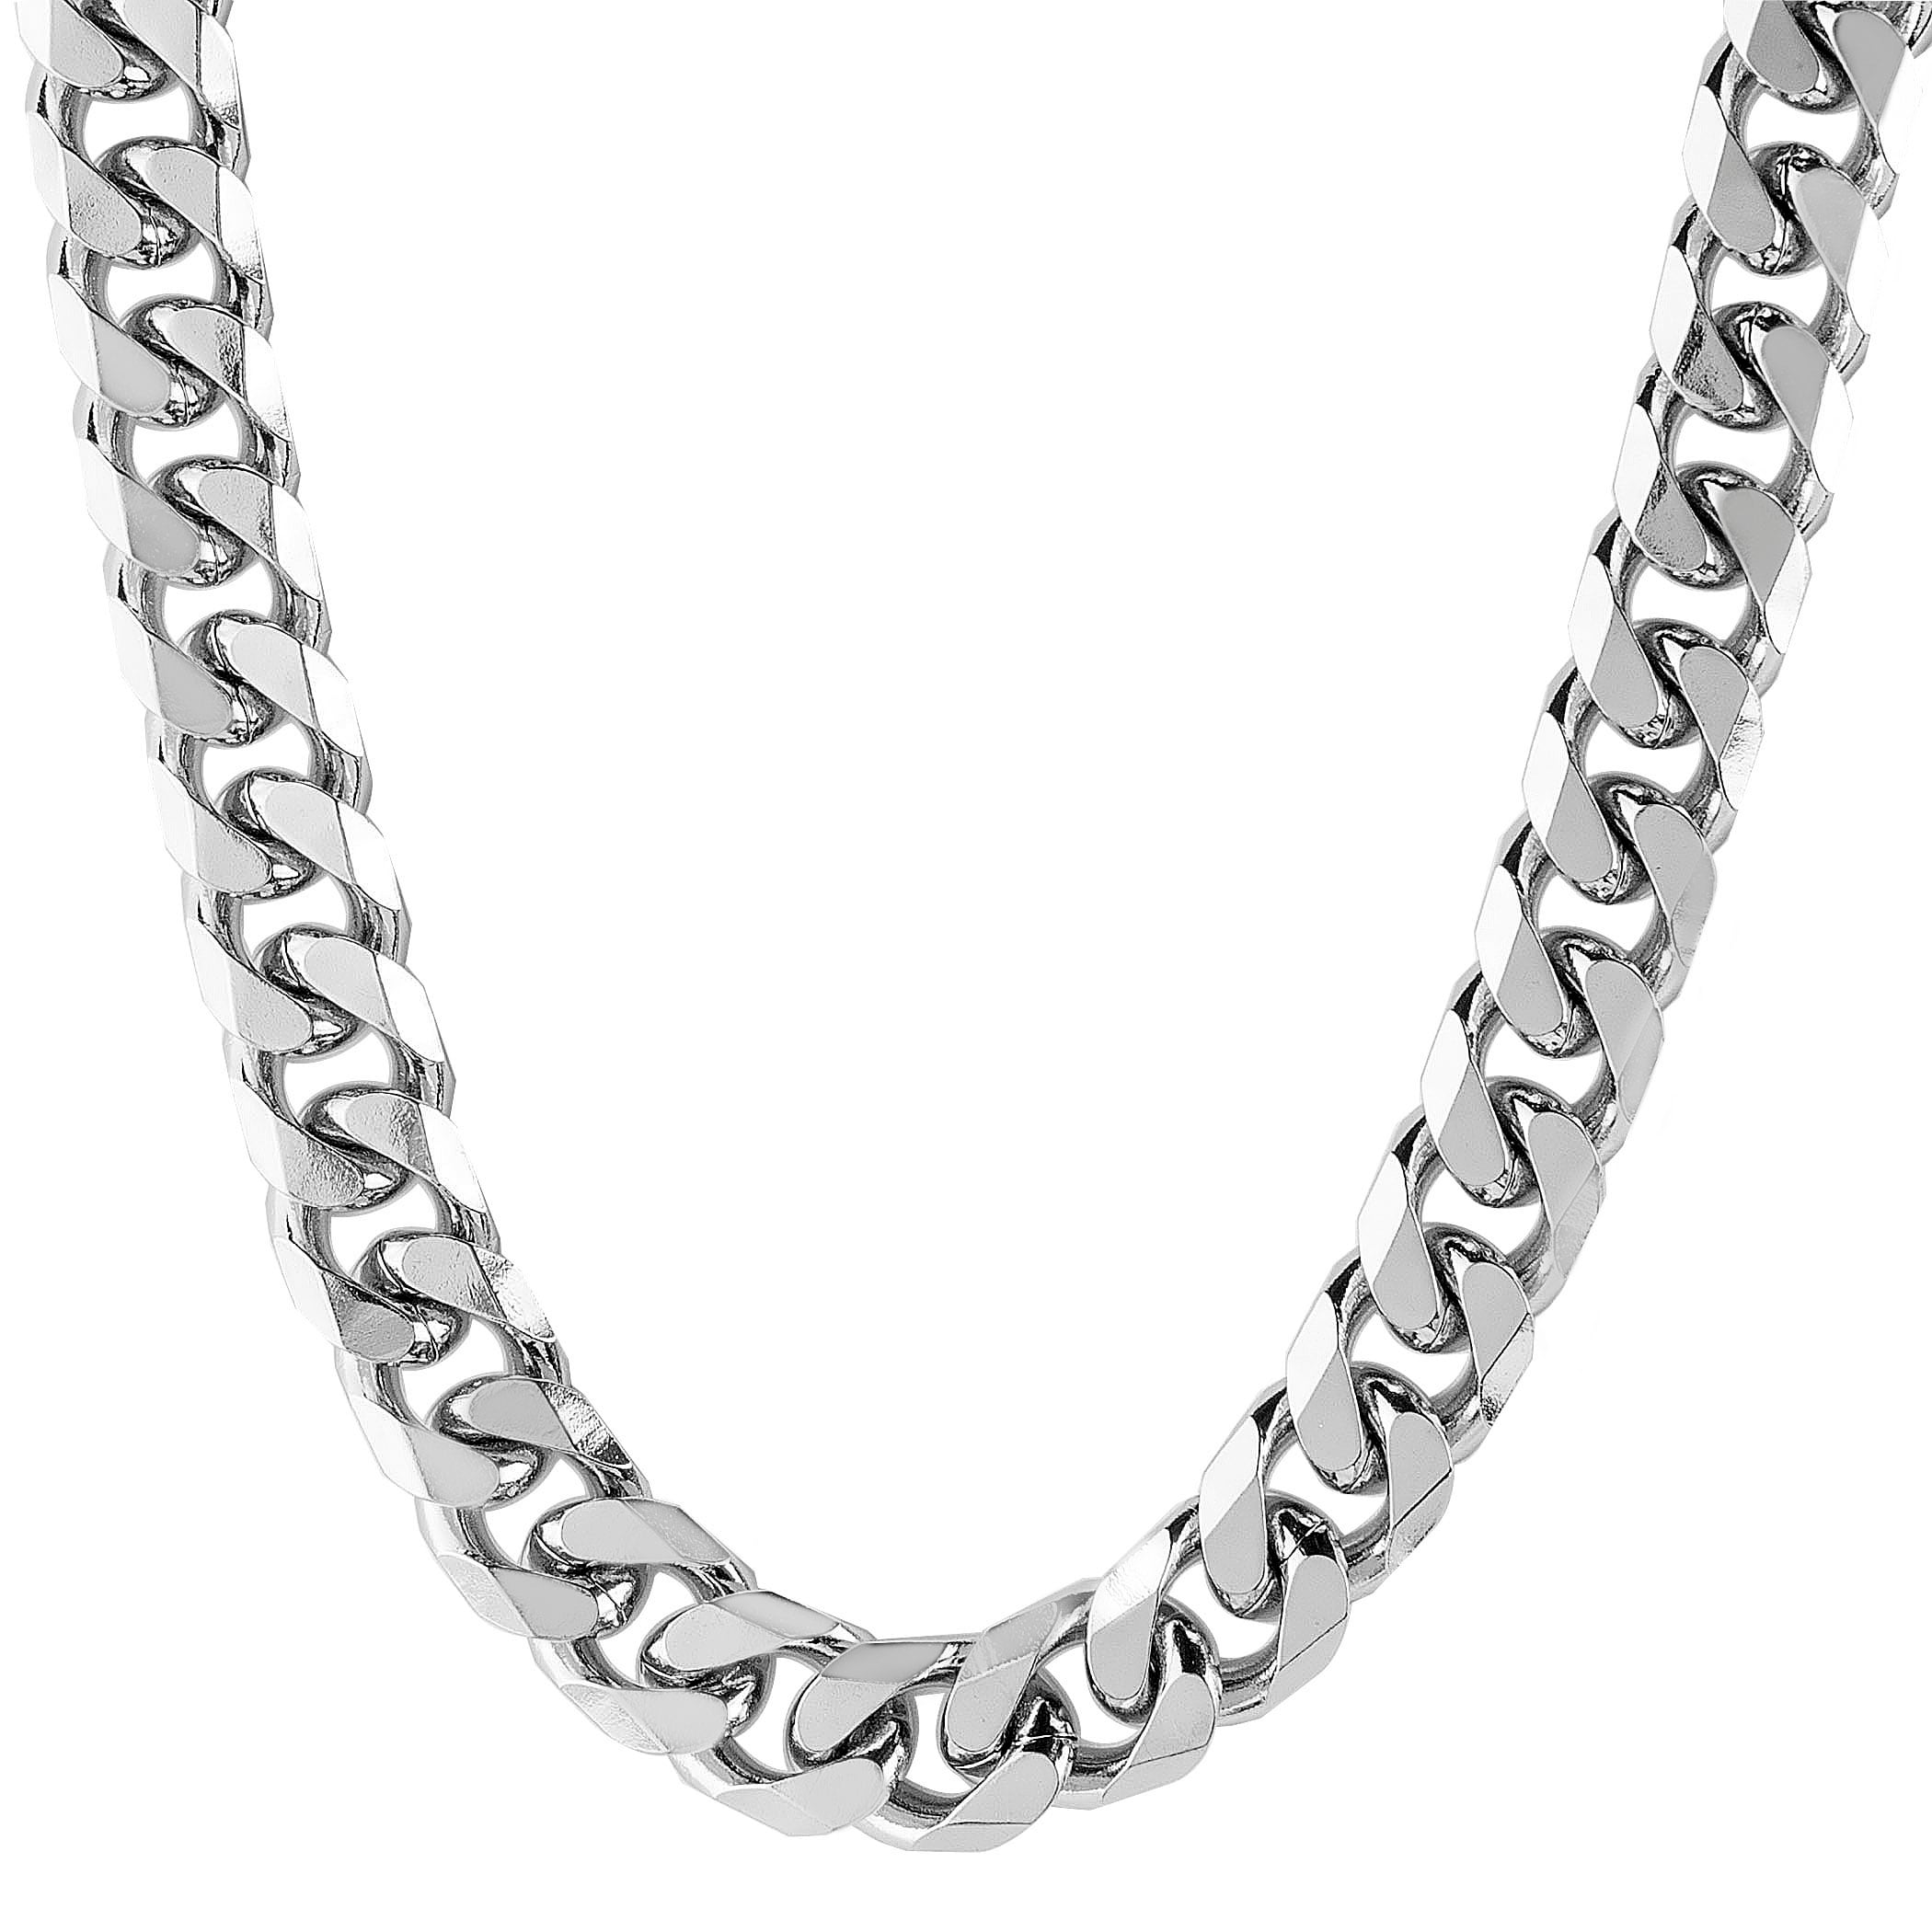 Flat Beveled Curb Stainless Steel Chain Open Link 10 Size